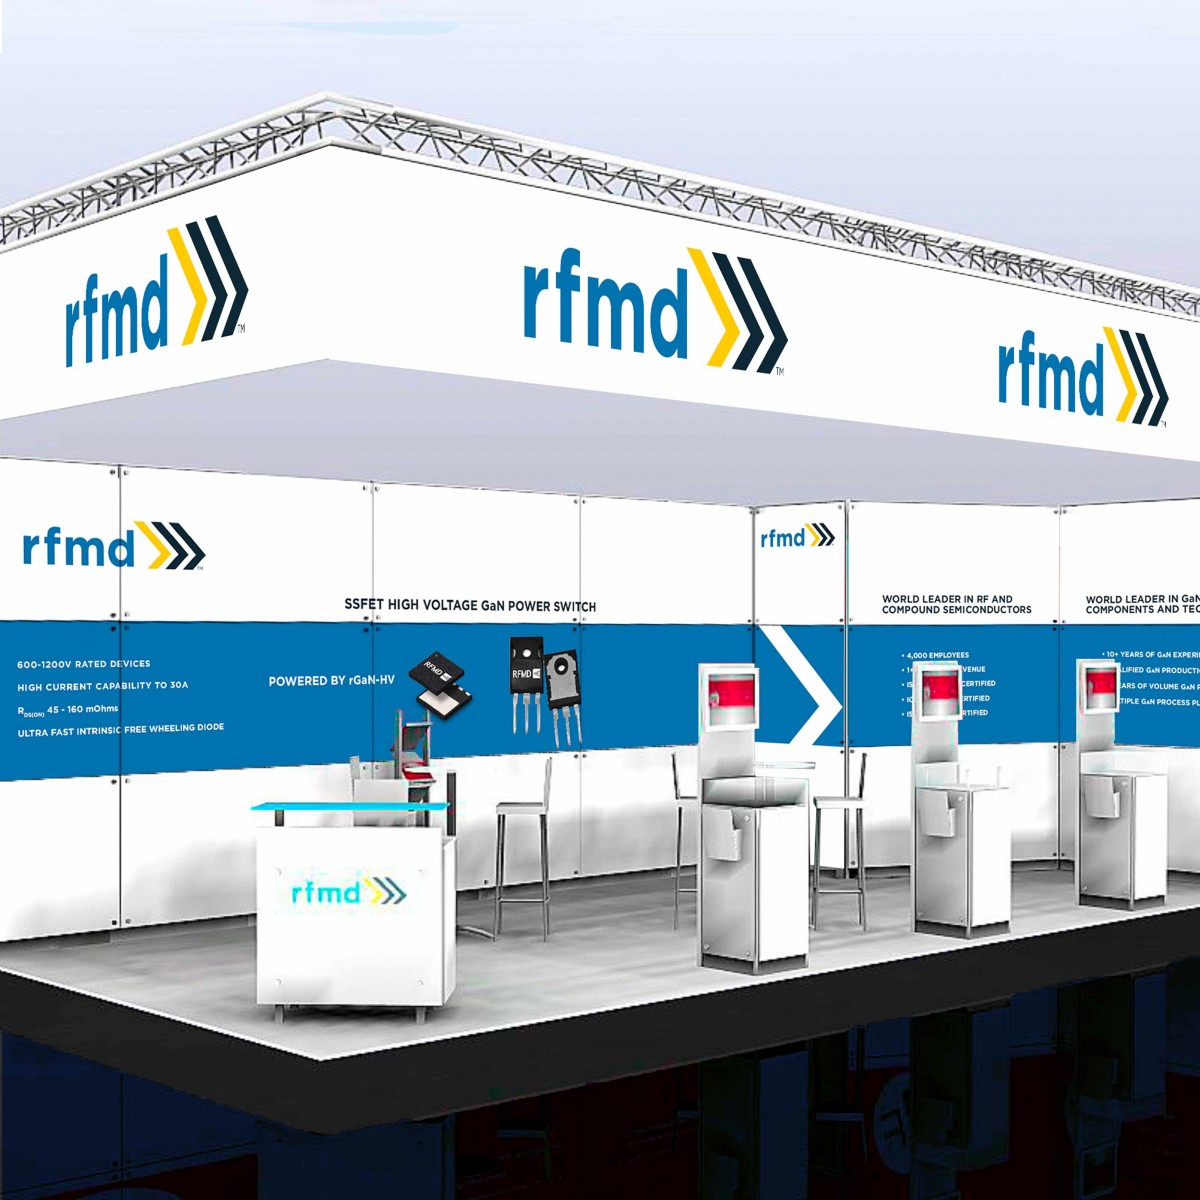 RFMD PCIM booth display